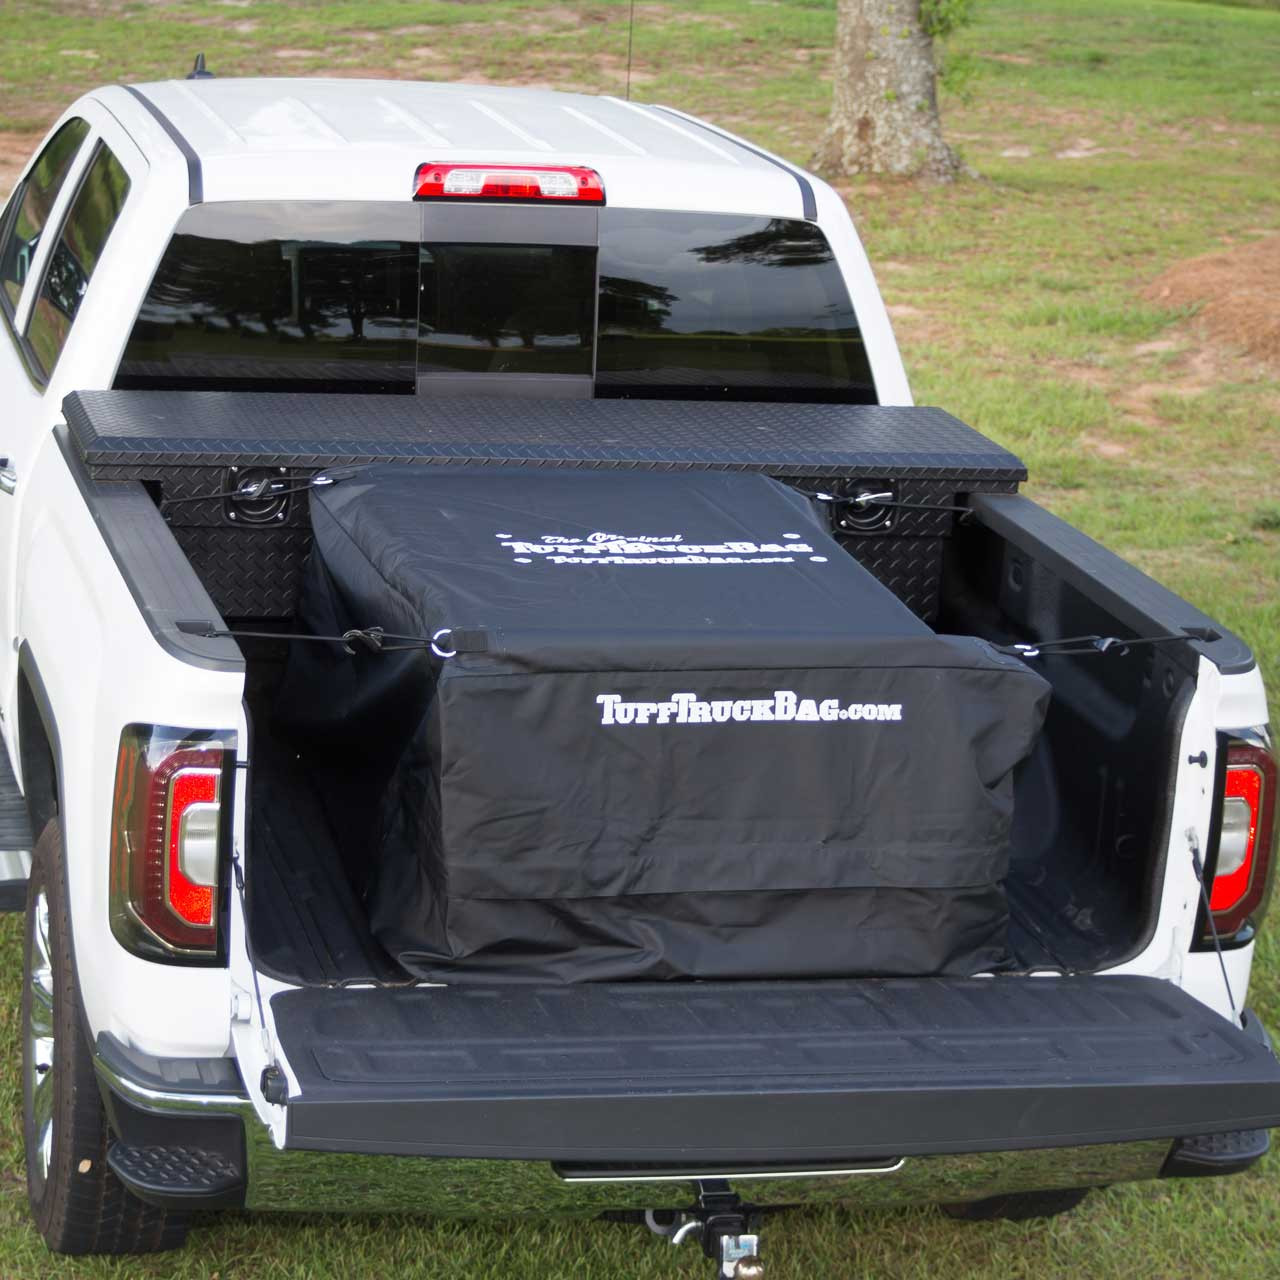 Back view of a black waterproof Tuff Truck Bag with the pickup truck tailgate down for full viewing